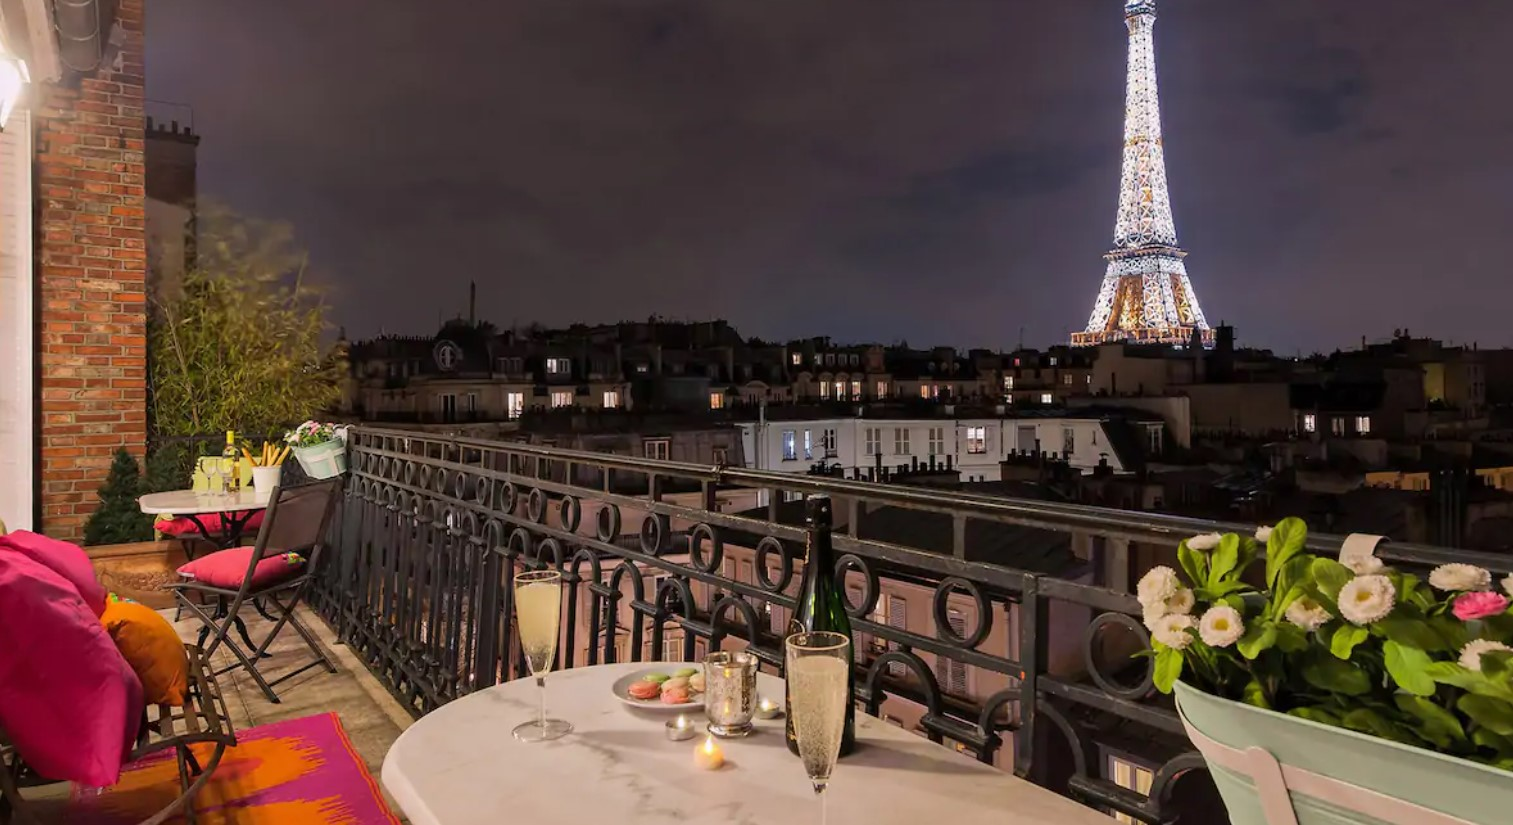 The view of the Eiffel Tower lit up at night from a large private terrace in an apartment in Paris